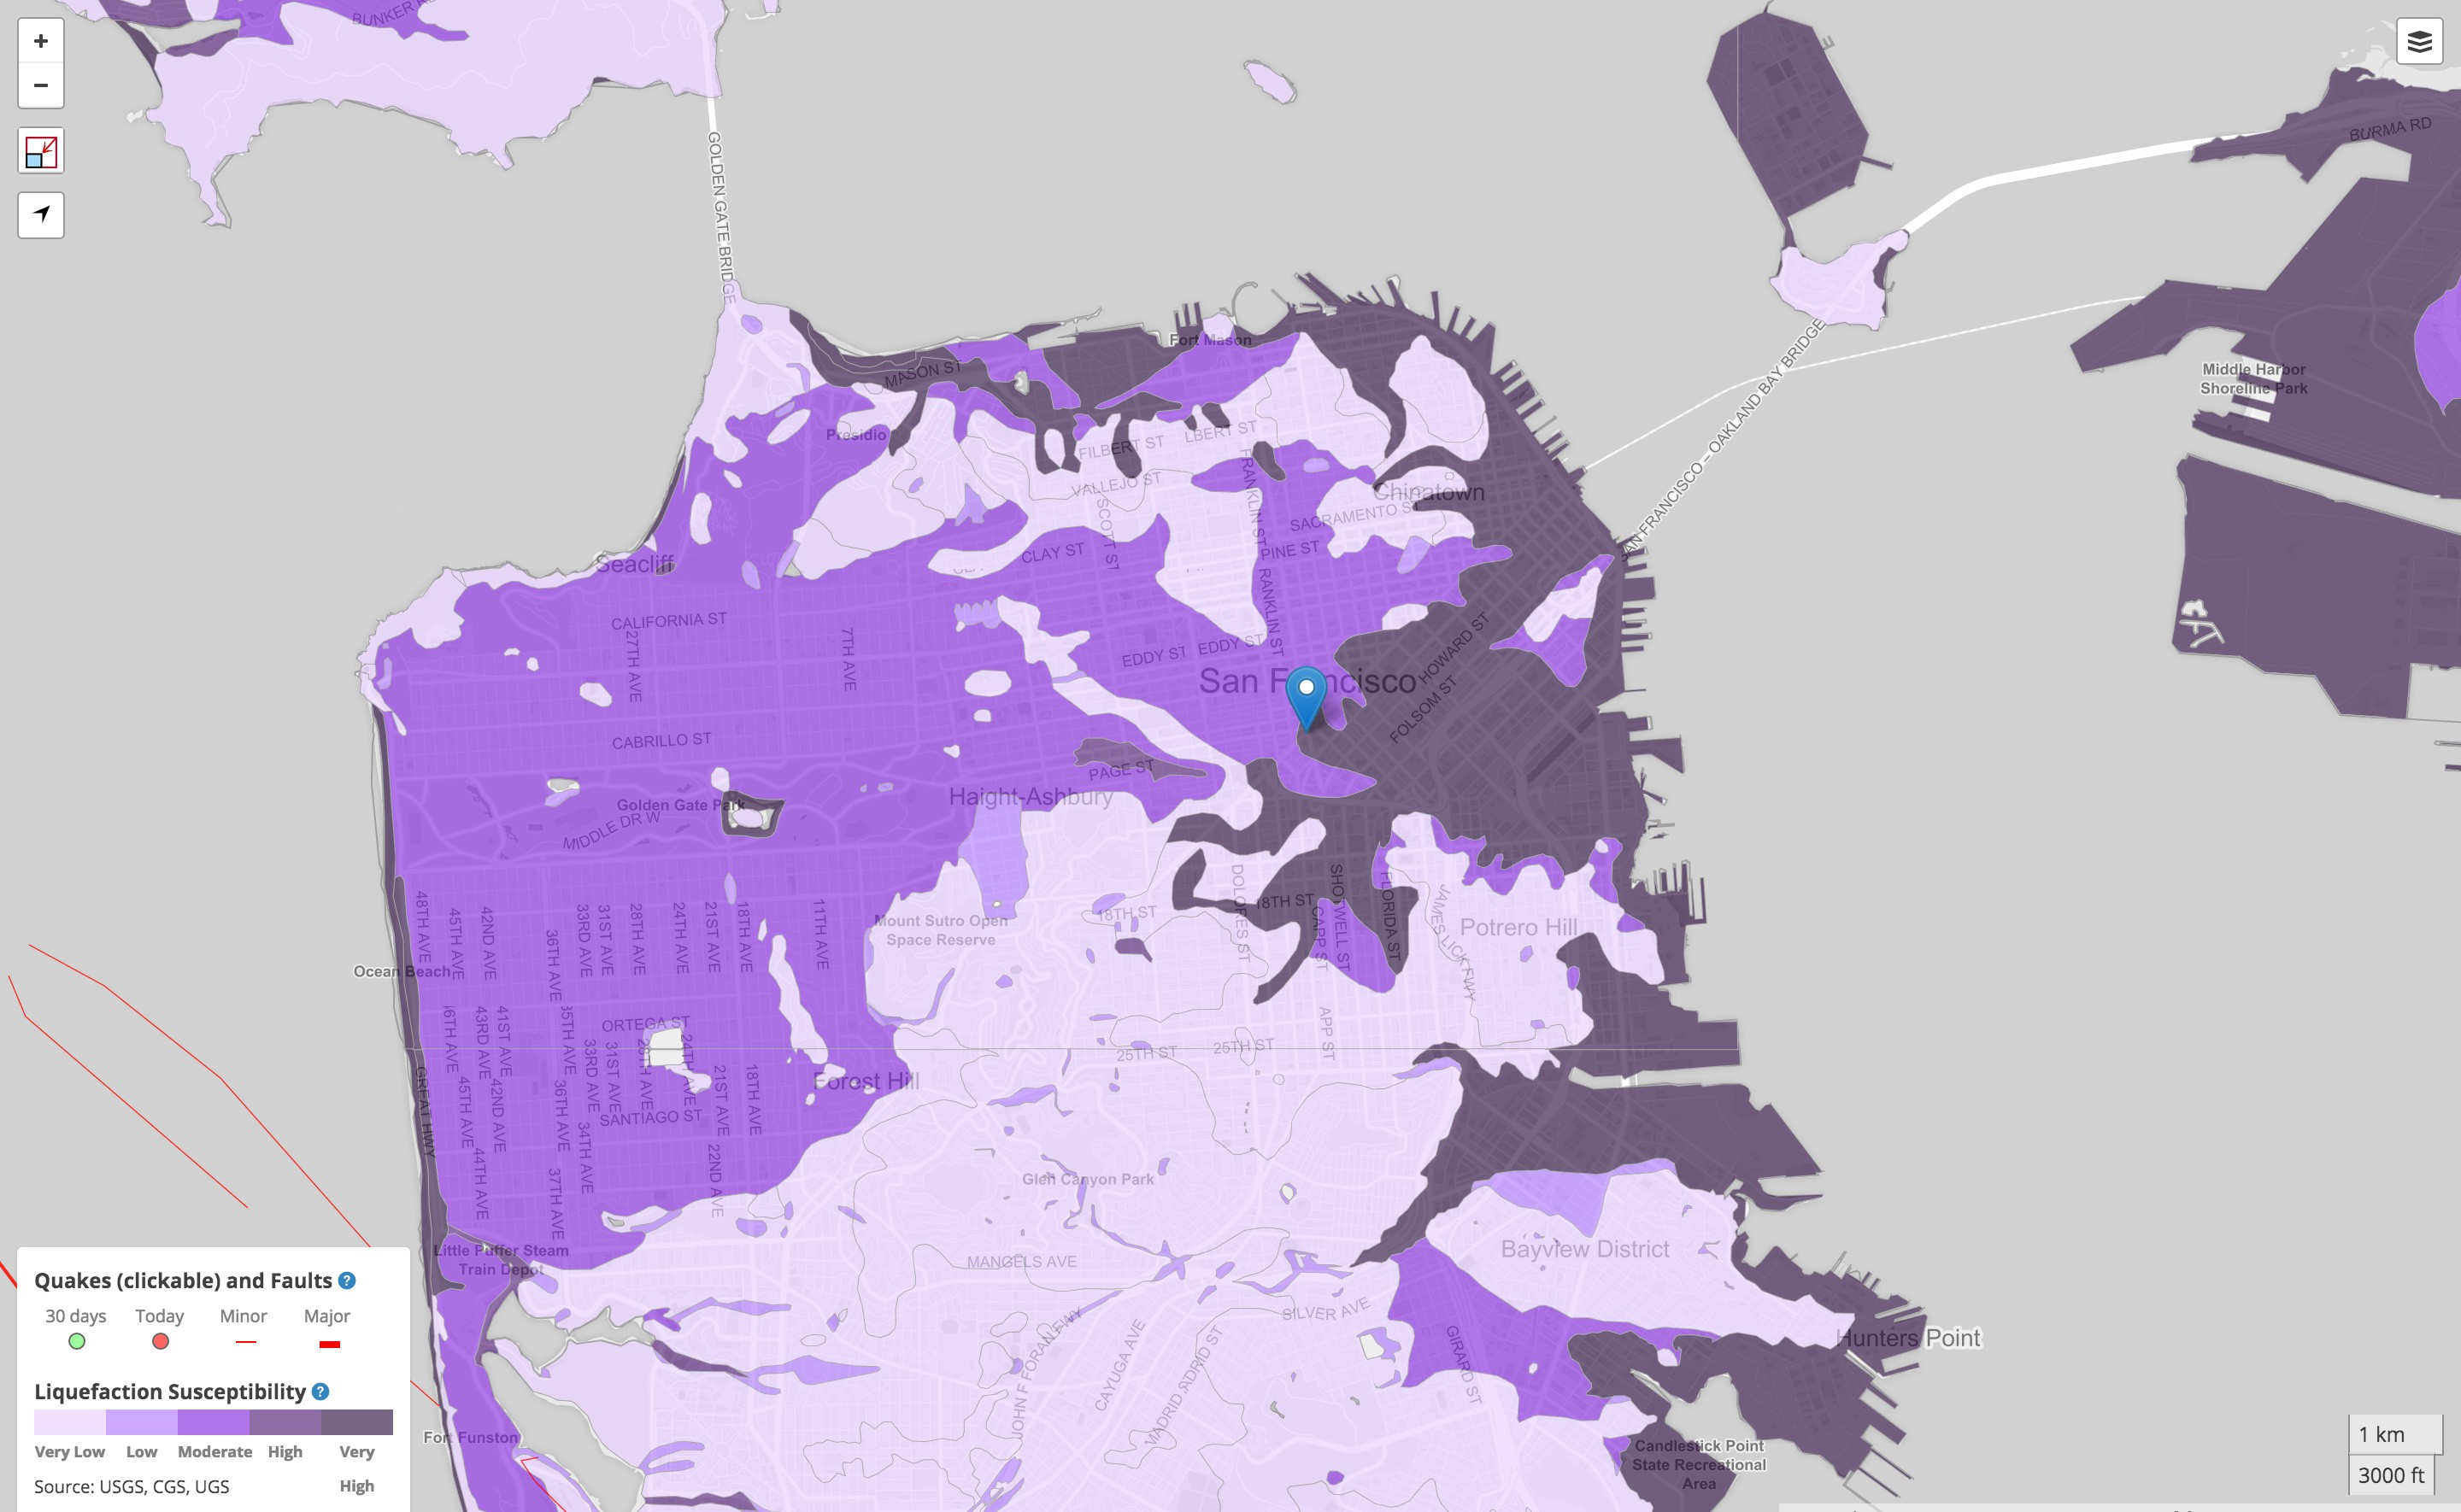 Soft Soil: The Untold Problem With 56% of San Francisco's ... on idaho wind map, alameda county districts map, wellington map, alameda liquefaction map, alaska liquefaction map, los angeles liquefaction map, seattle liquefaction map, san francisco landfill, east bay liquefaction map, tacoma liquefaction map, usgs liquefaction susceptibility map, san francisco bay, salt lake liquefaction map, la county liquefaction map, boston liquefaction map, anchorage liquefaction map, abag liquefaction map, san francisco time zone, california earthquake map, tokyo liquefaction map,